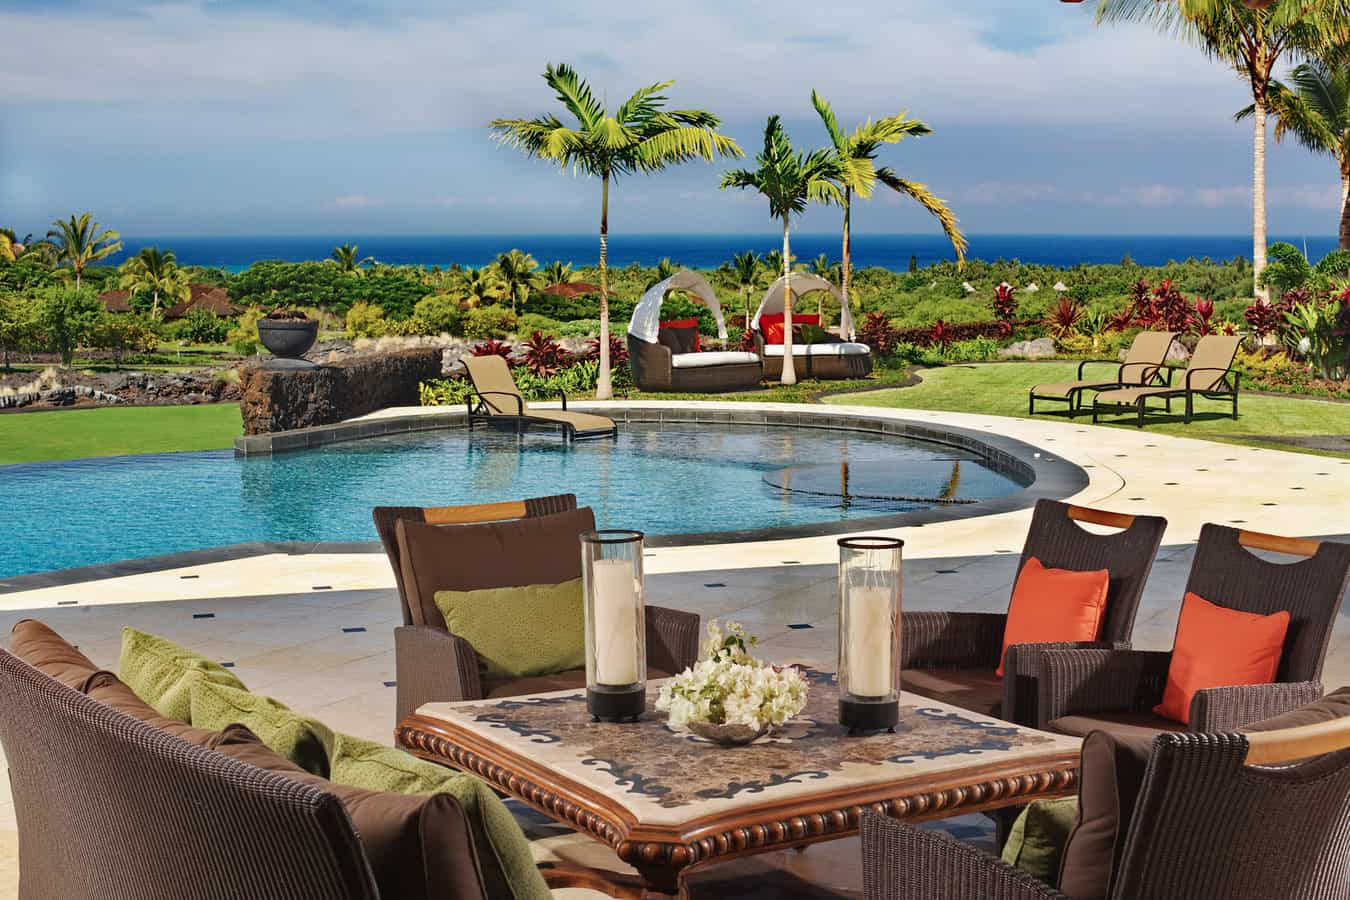 What to Look for in a Hawaiian View Home